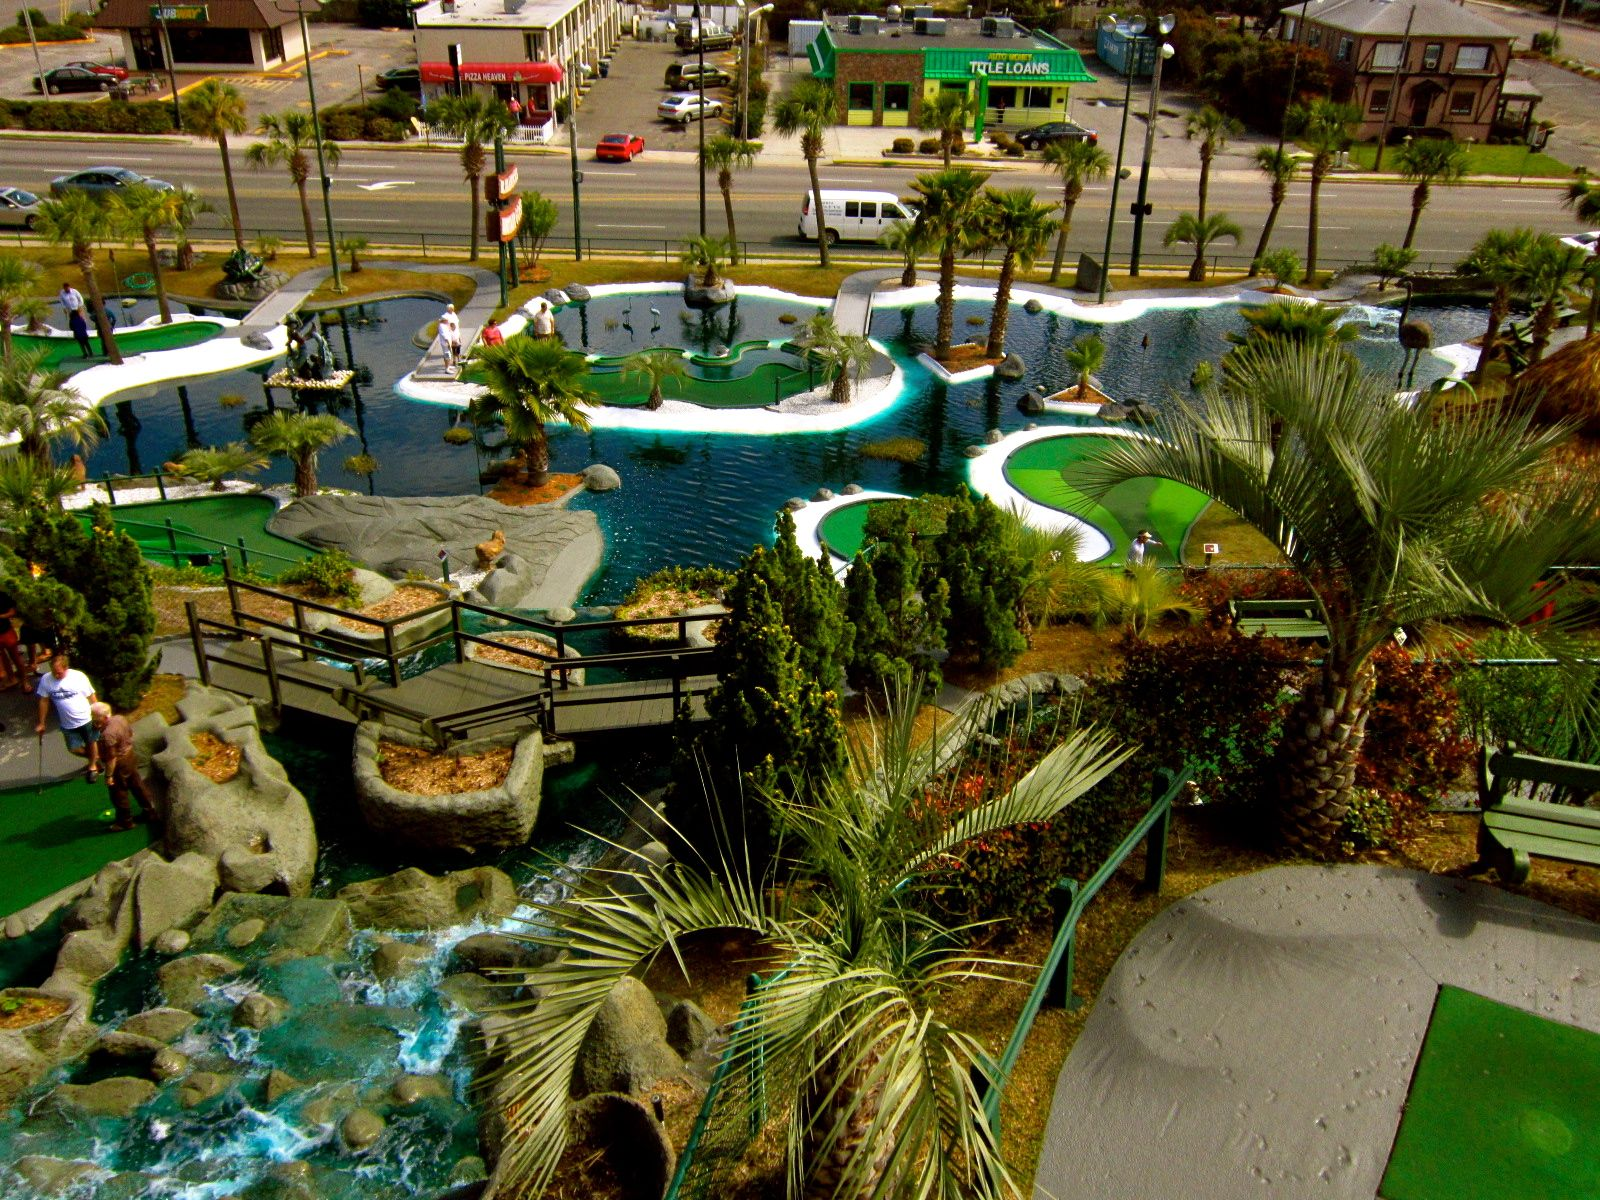 Today Is Miniature Golf Day On September 21st Here S A Pretty Nice Miniature Golf Course Myrtle Beach Miniature Golf Miniature Golf Course